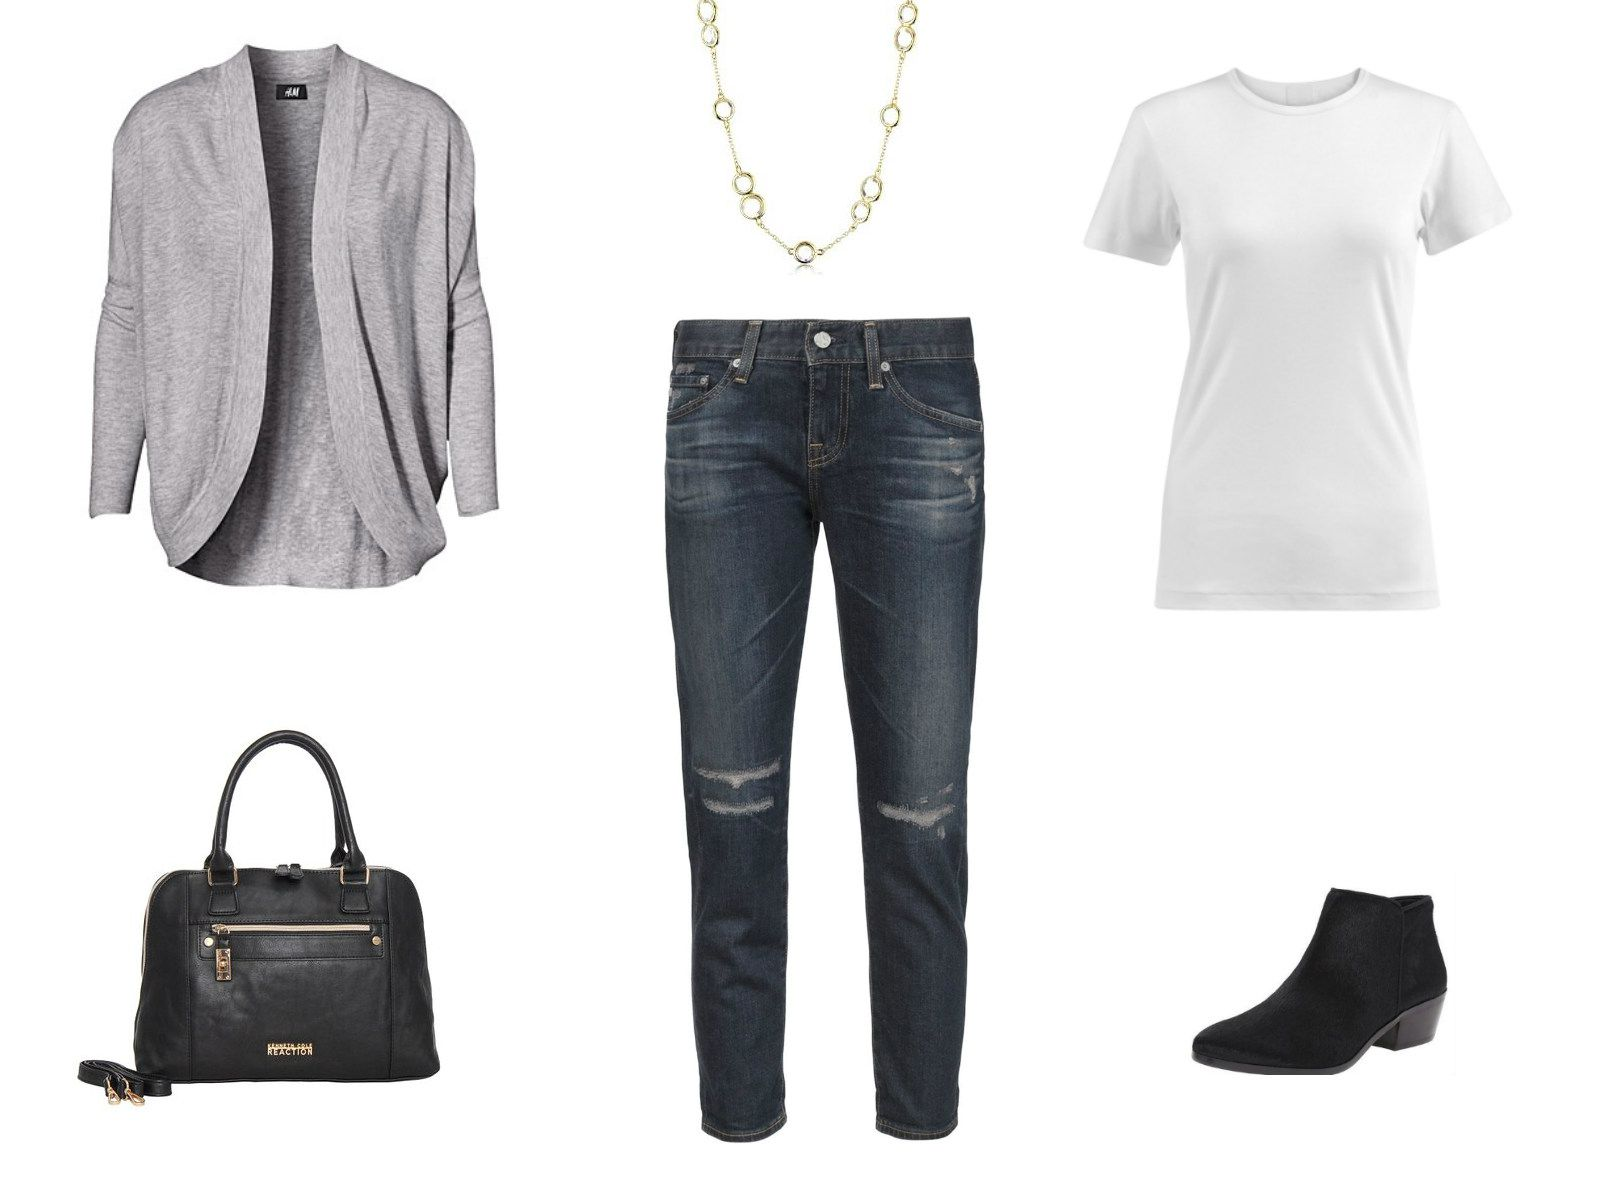 Outfit idea - cropped jeans and cardigan sweater